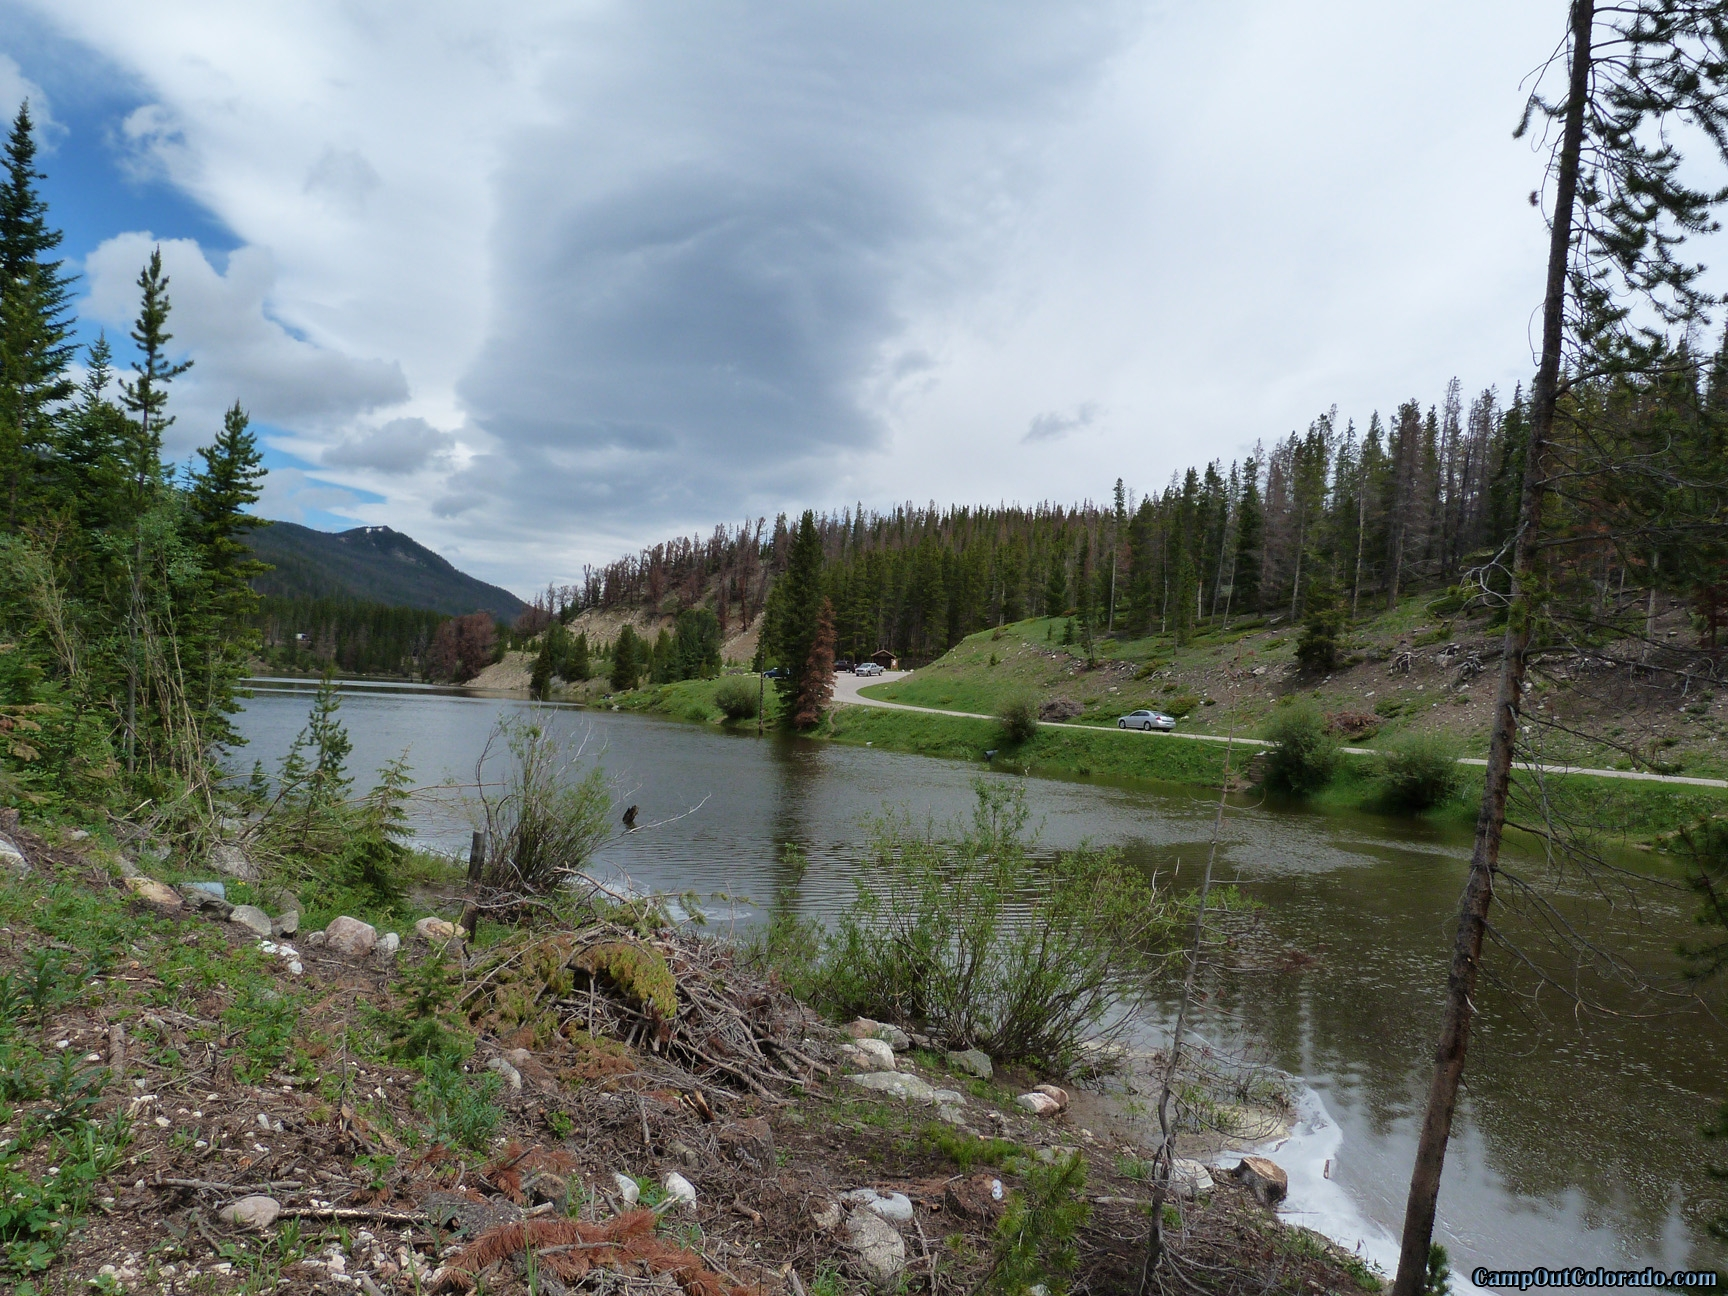 camp-out-colorado-chambers-lake-campground-untrance